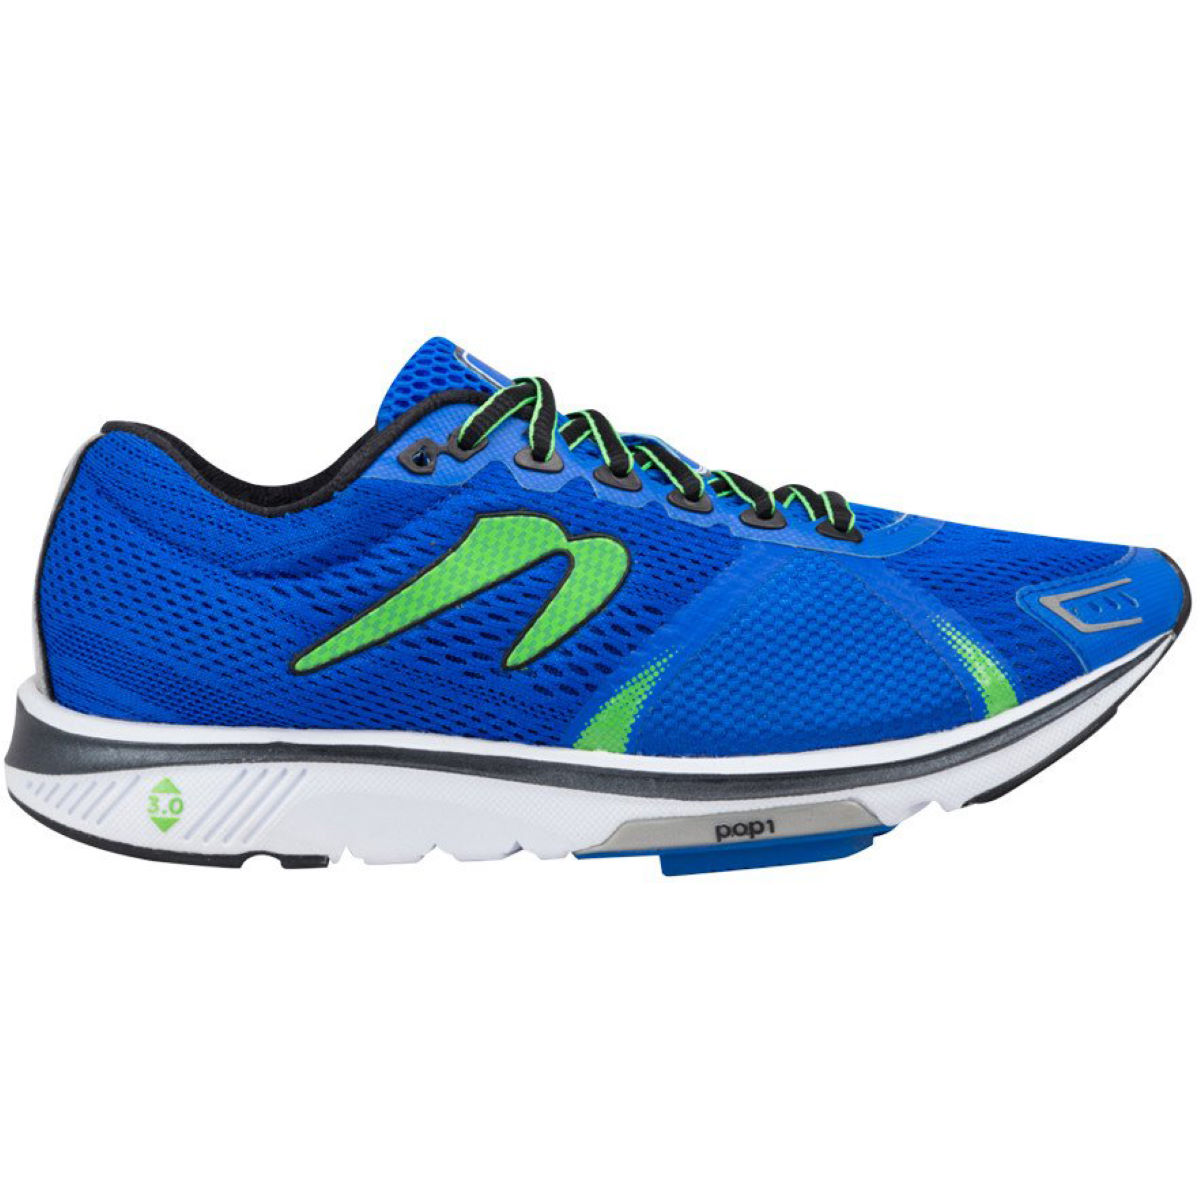 Newton running shoes gravity vi shoes cushion running shoes blue aw17 m000117 7